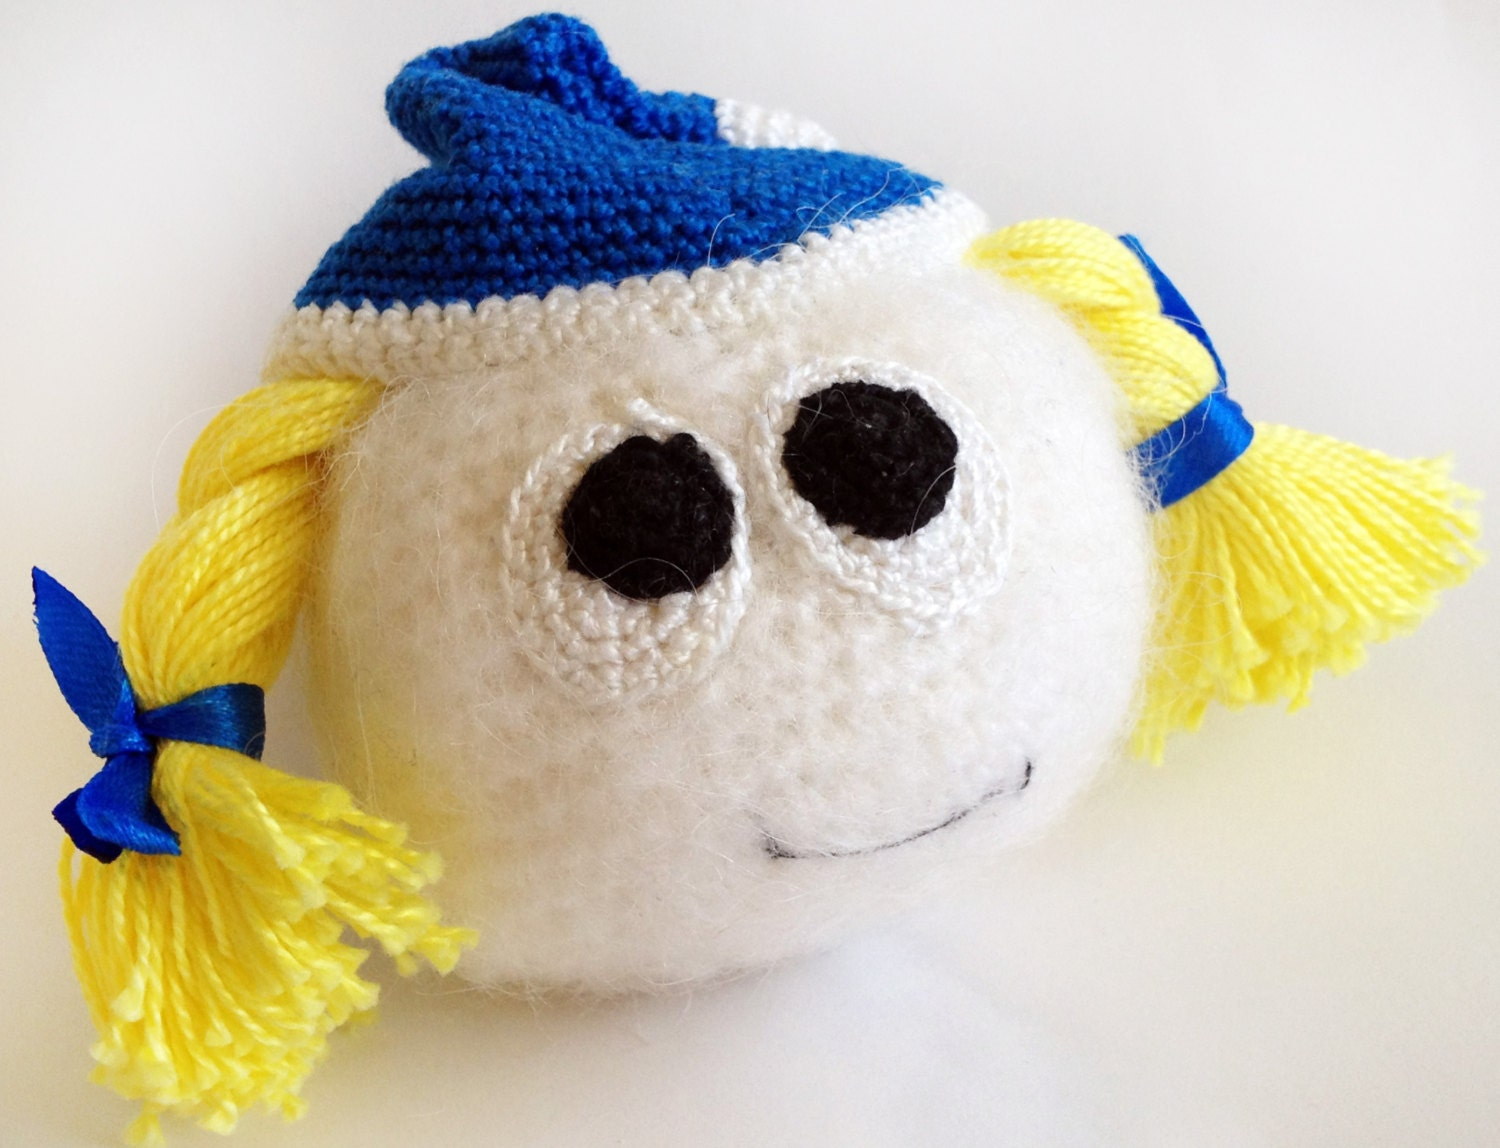 Crochet Amigurumi Smiley Faces : Christmas gift Smile Snowmaiden Crochet amigurumi smiley